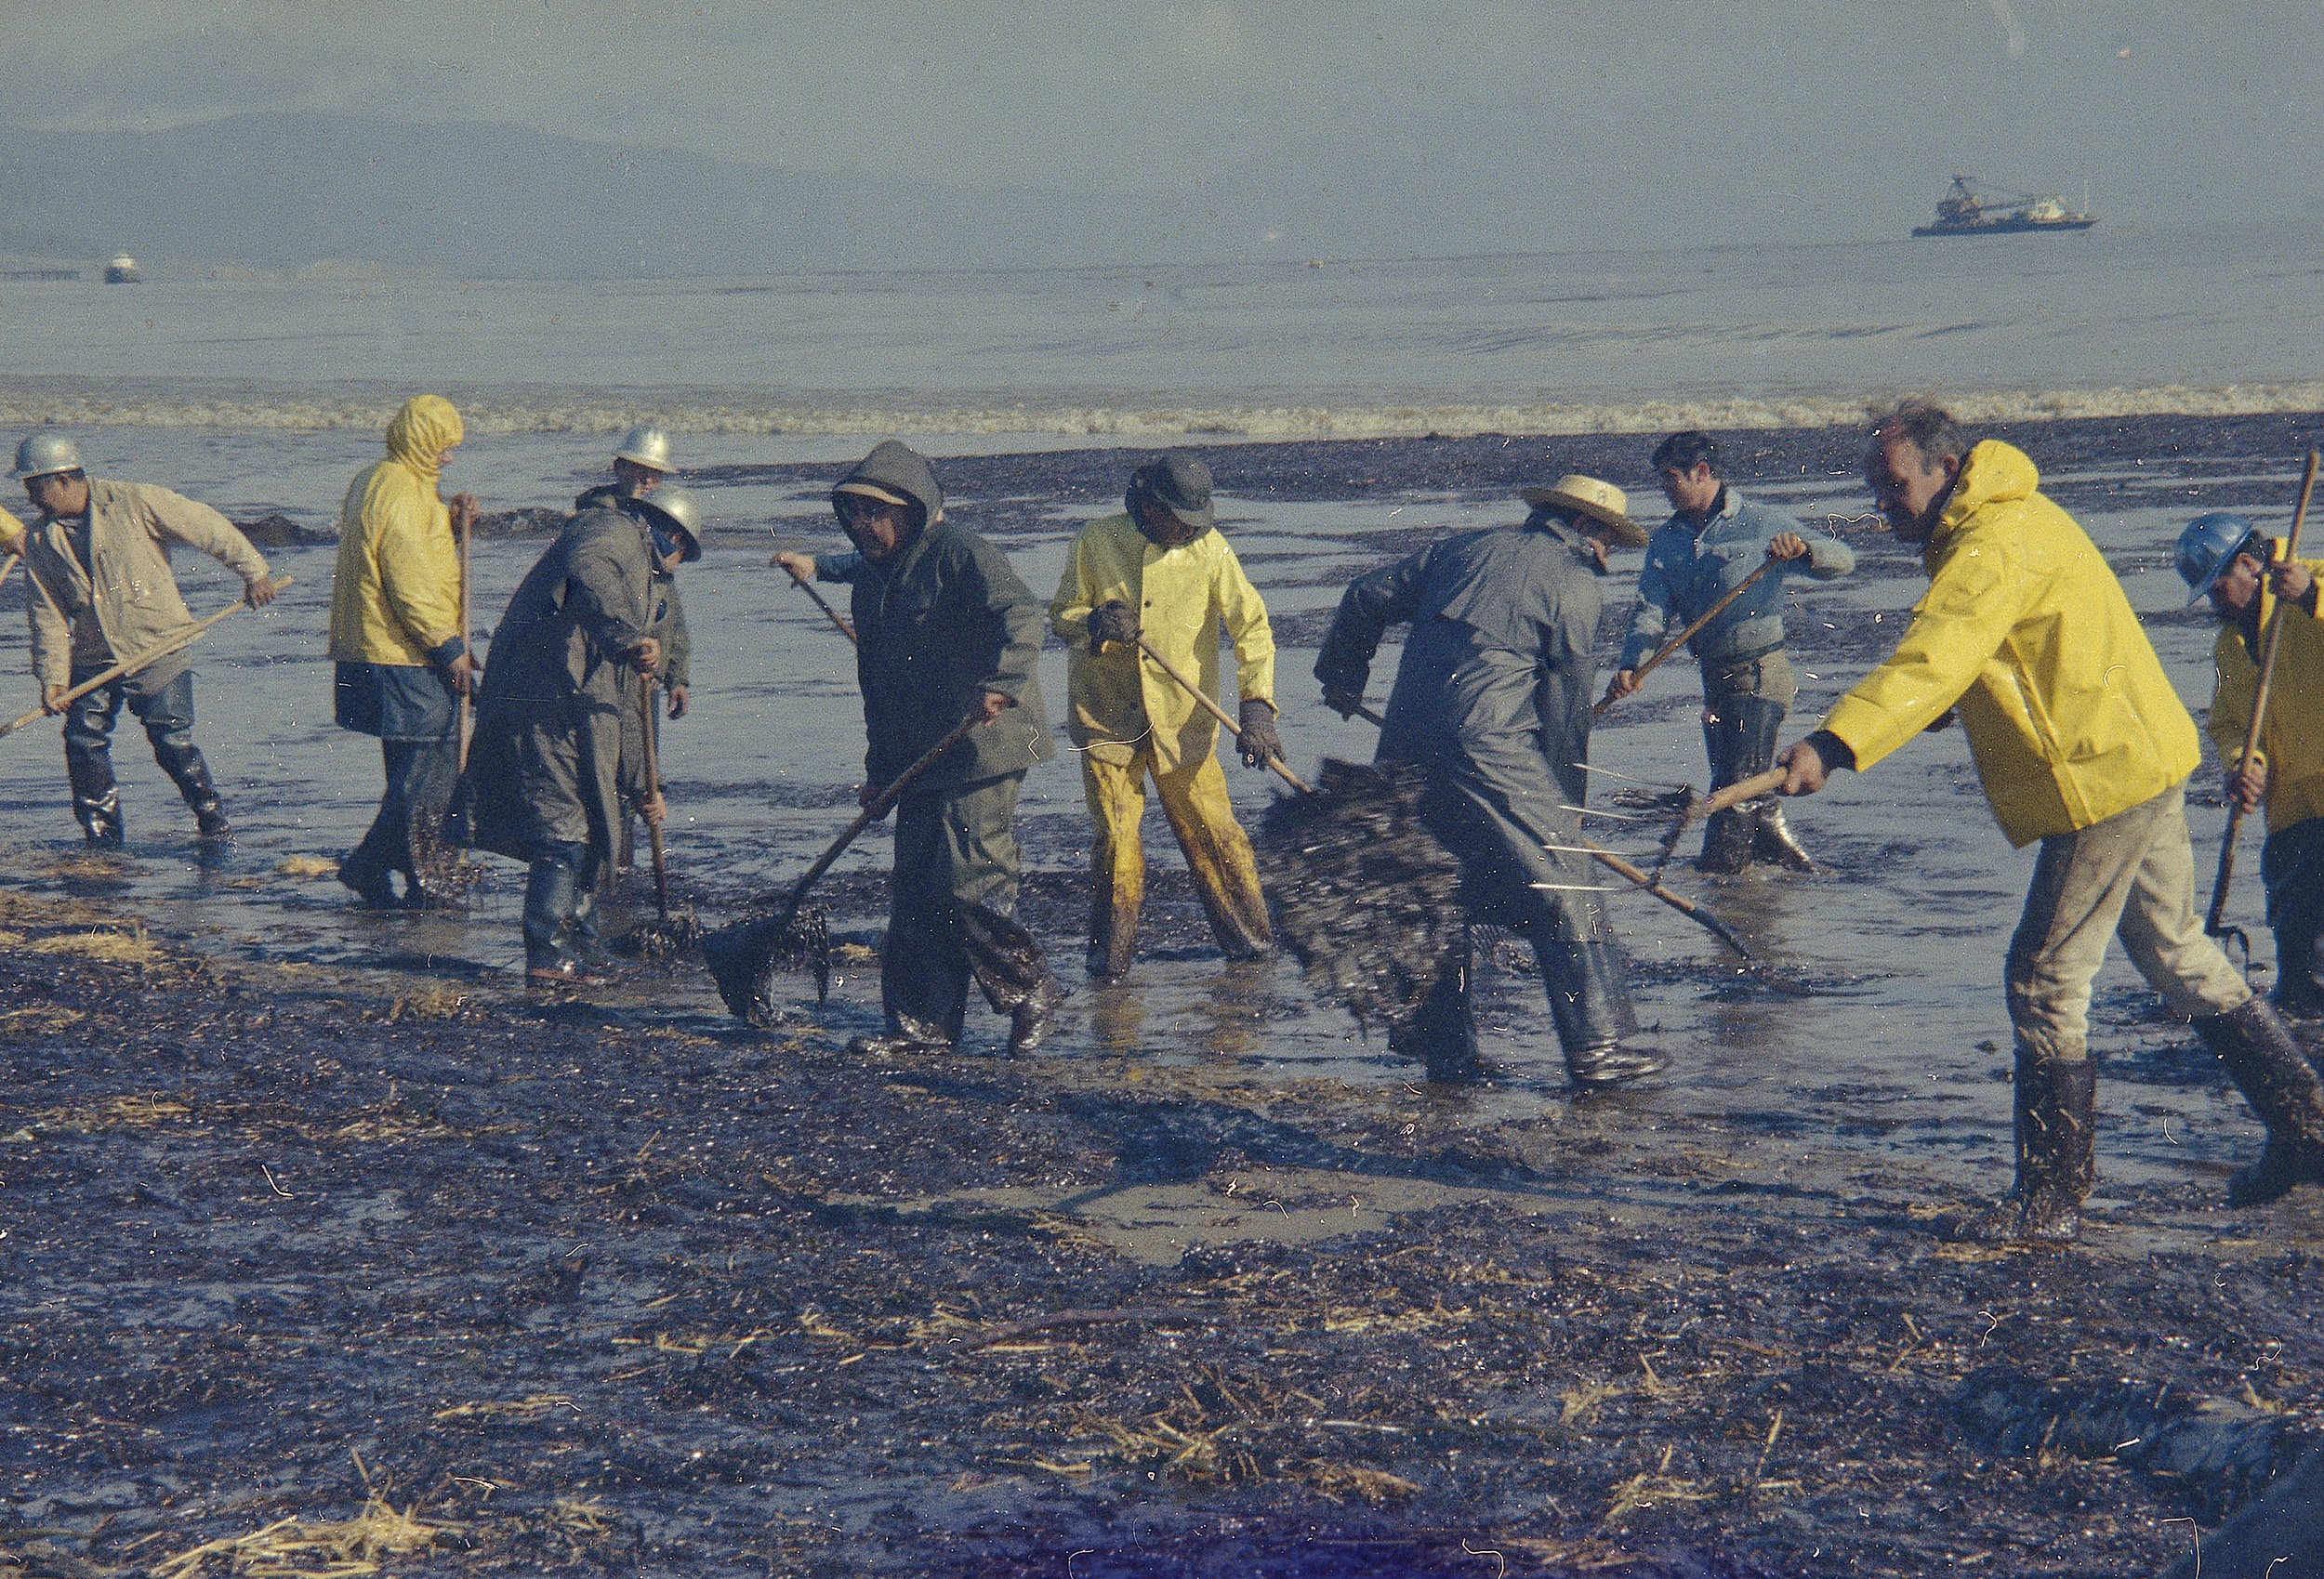 Santa Barbara oil spill 1969